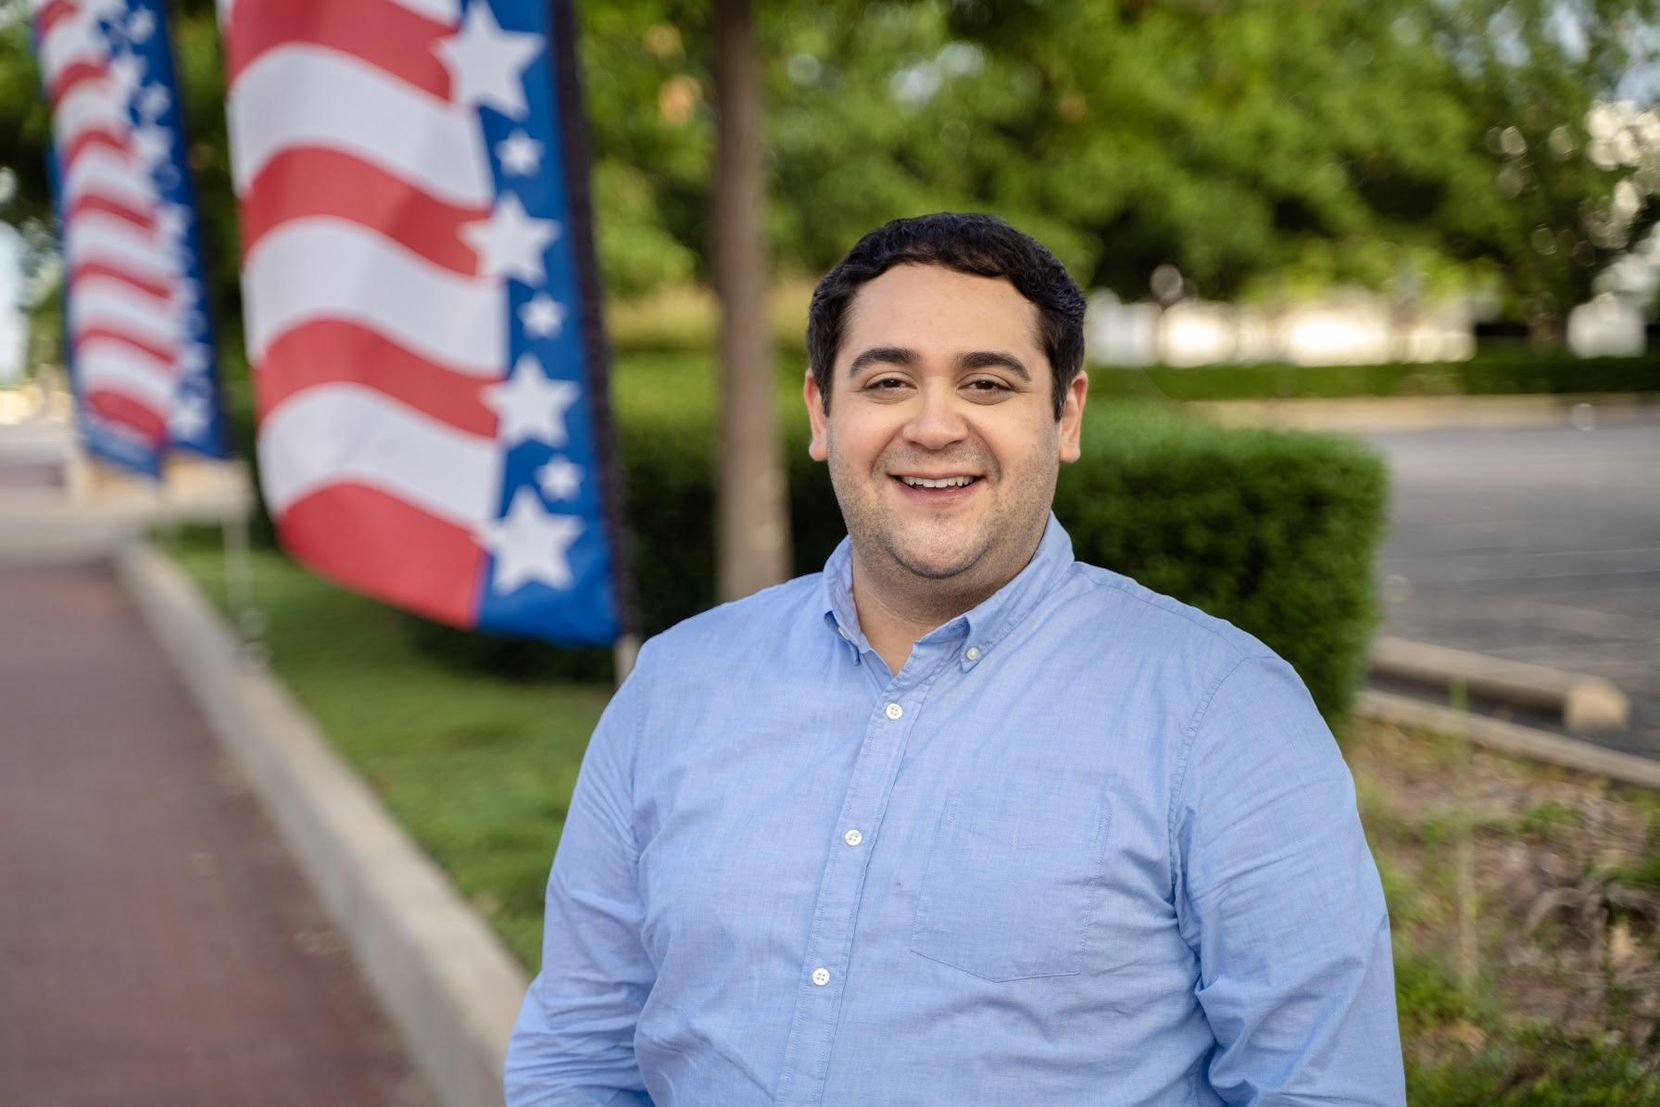 Lorenzo Sanchez, a Democrat, is running for Texas House District 67.